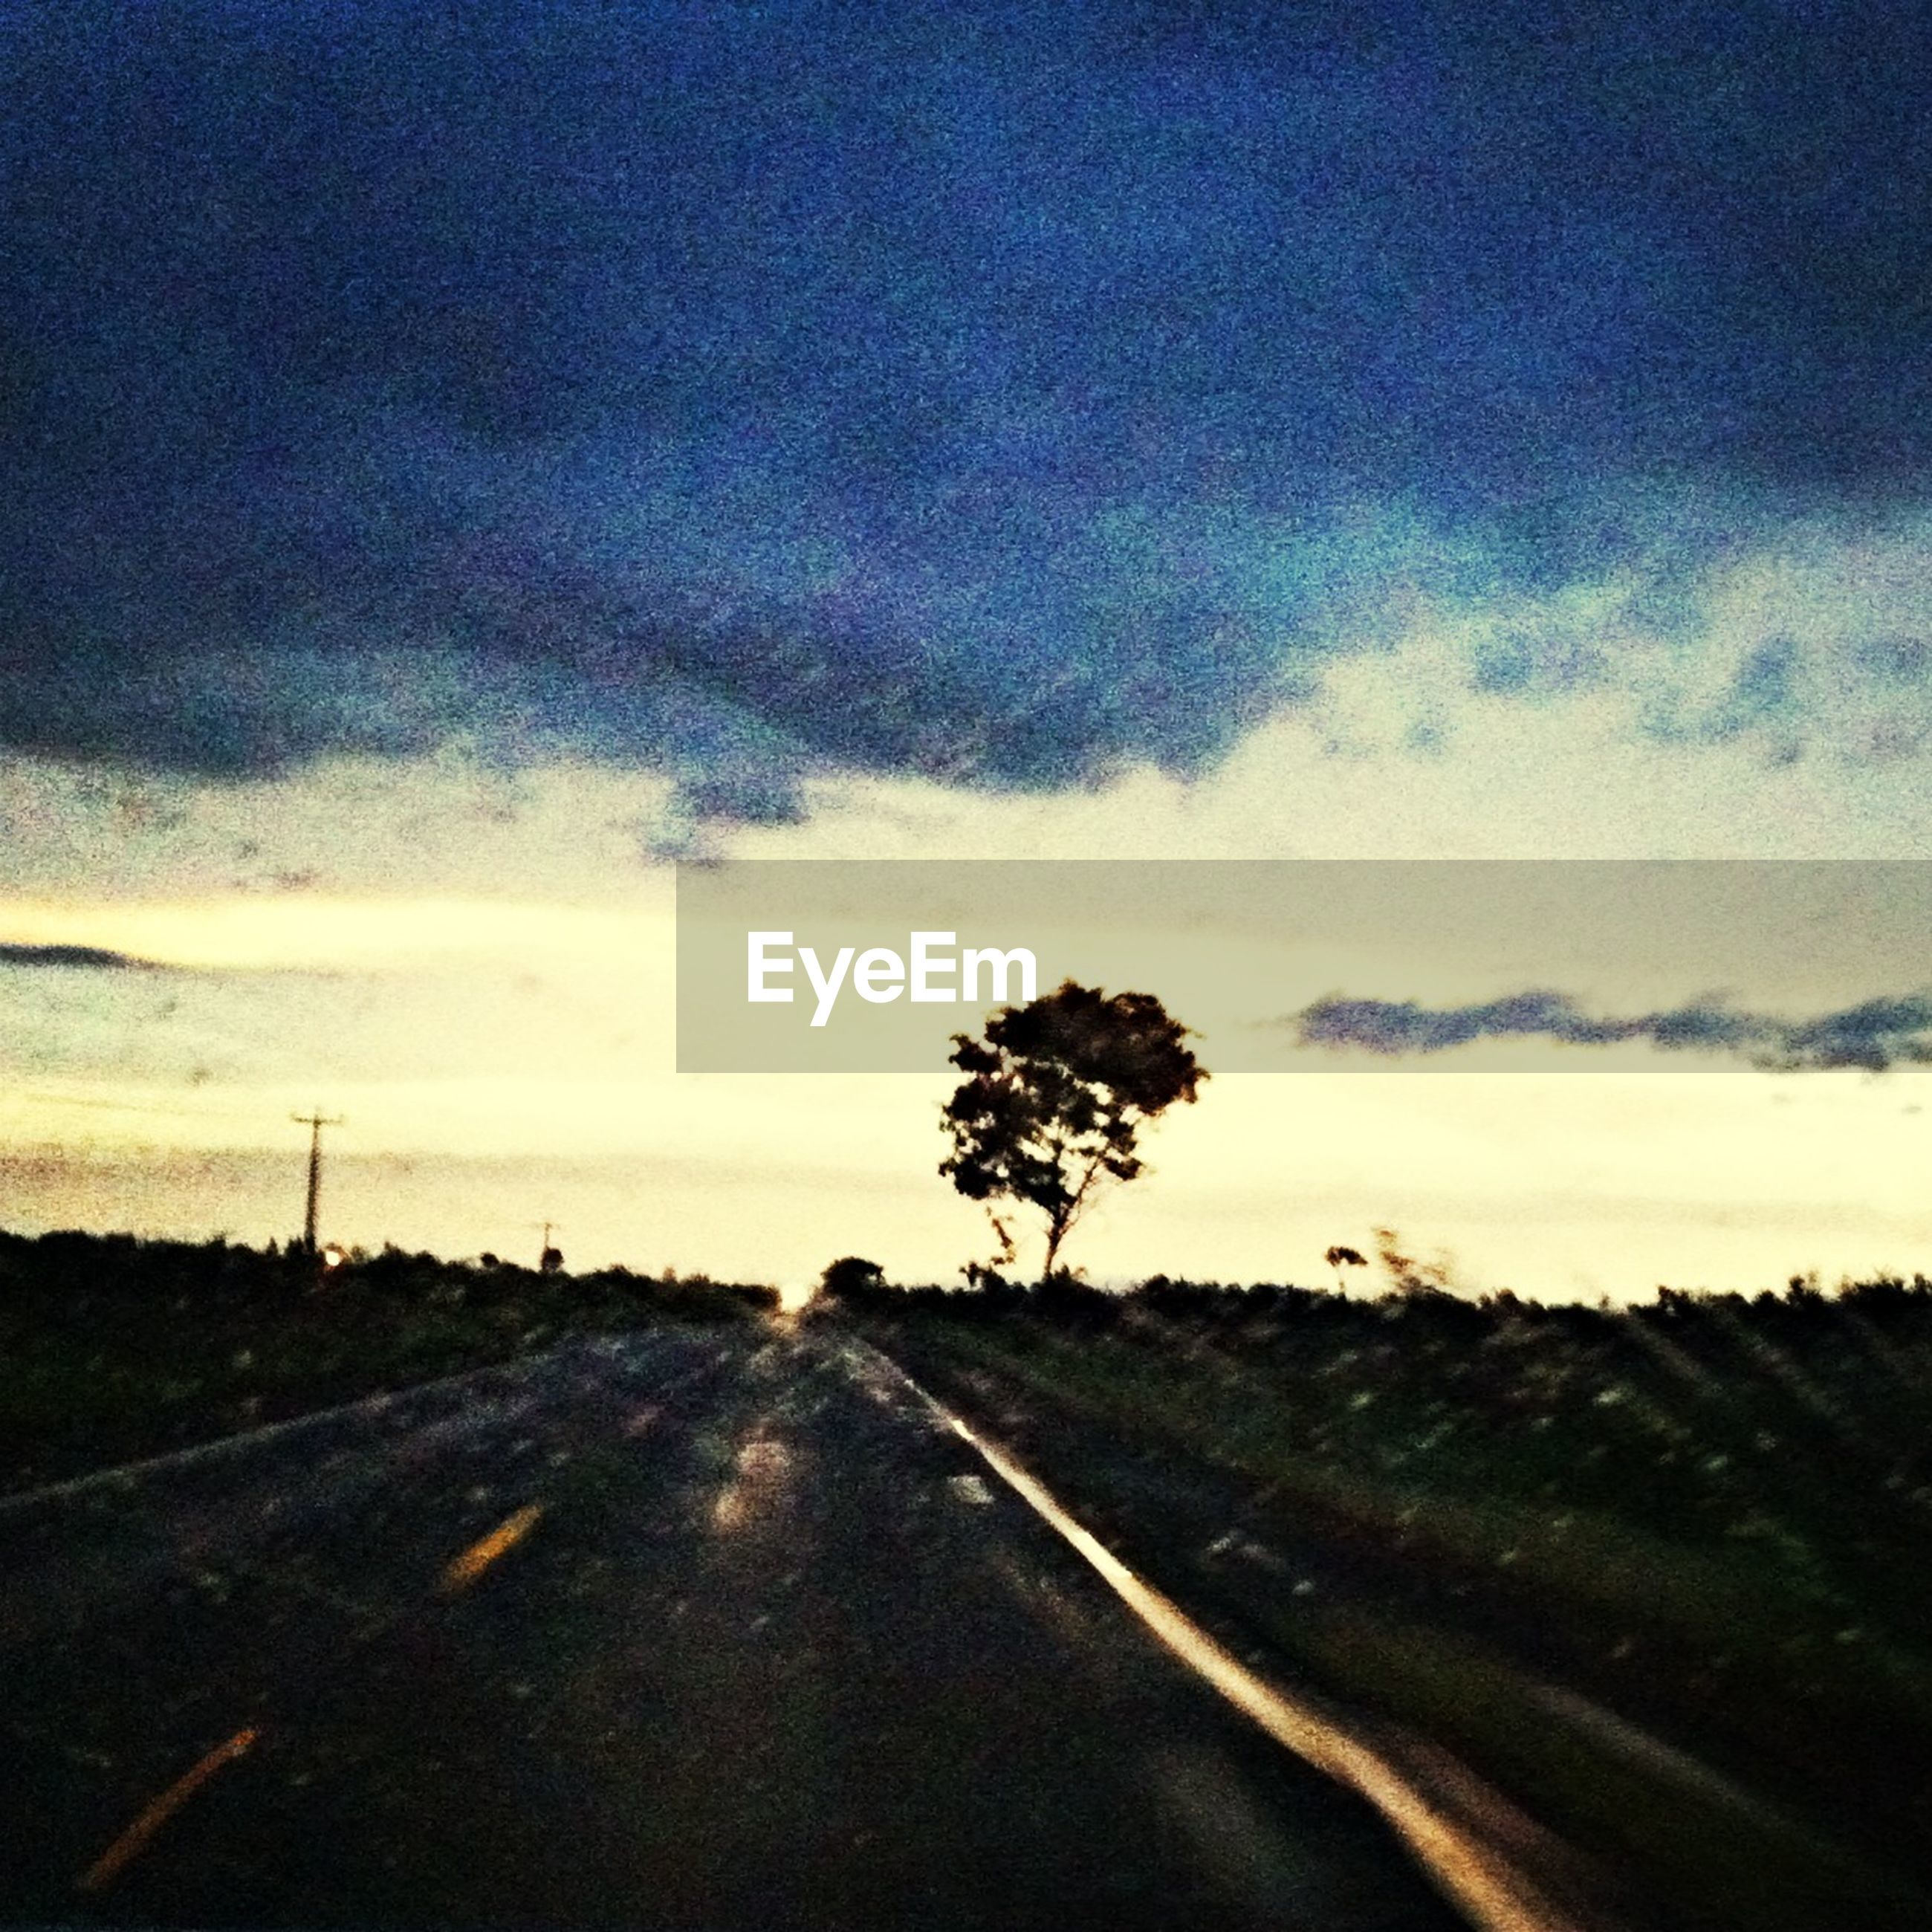 the way forward, sky, road, tranquility, tranquil scene, landscape, diminishing perspective, country road, transportation, tree, vanishing point, cloud - sky, scenics, nature, beauty in nature, empty road, field, cloud, cloudy, road marking